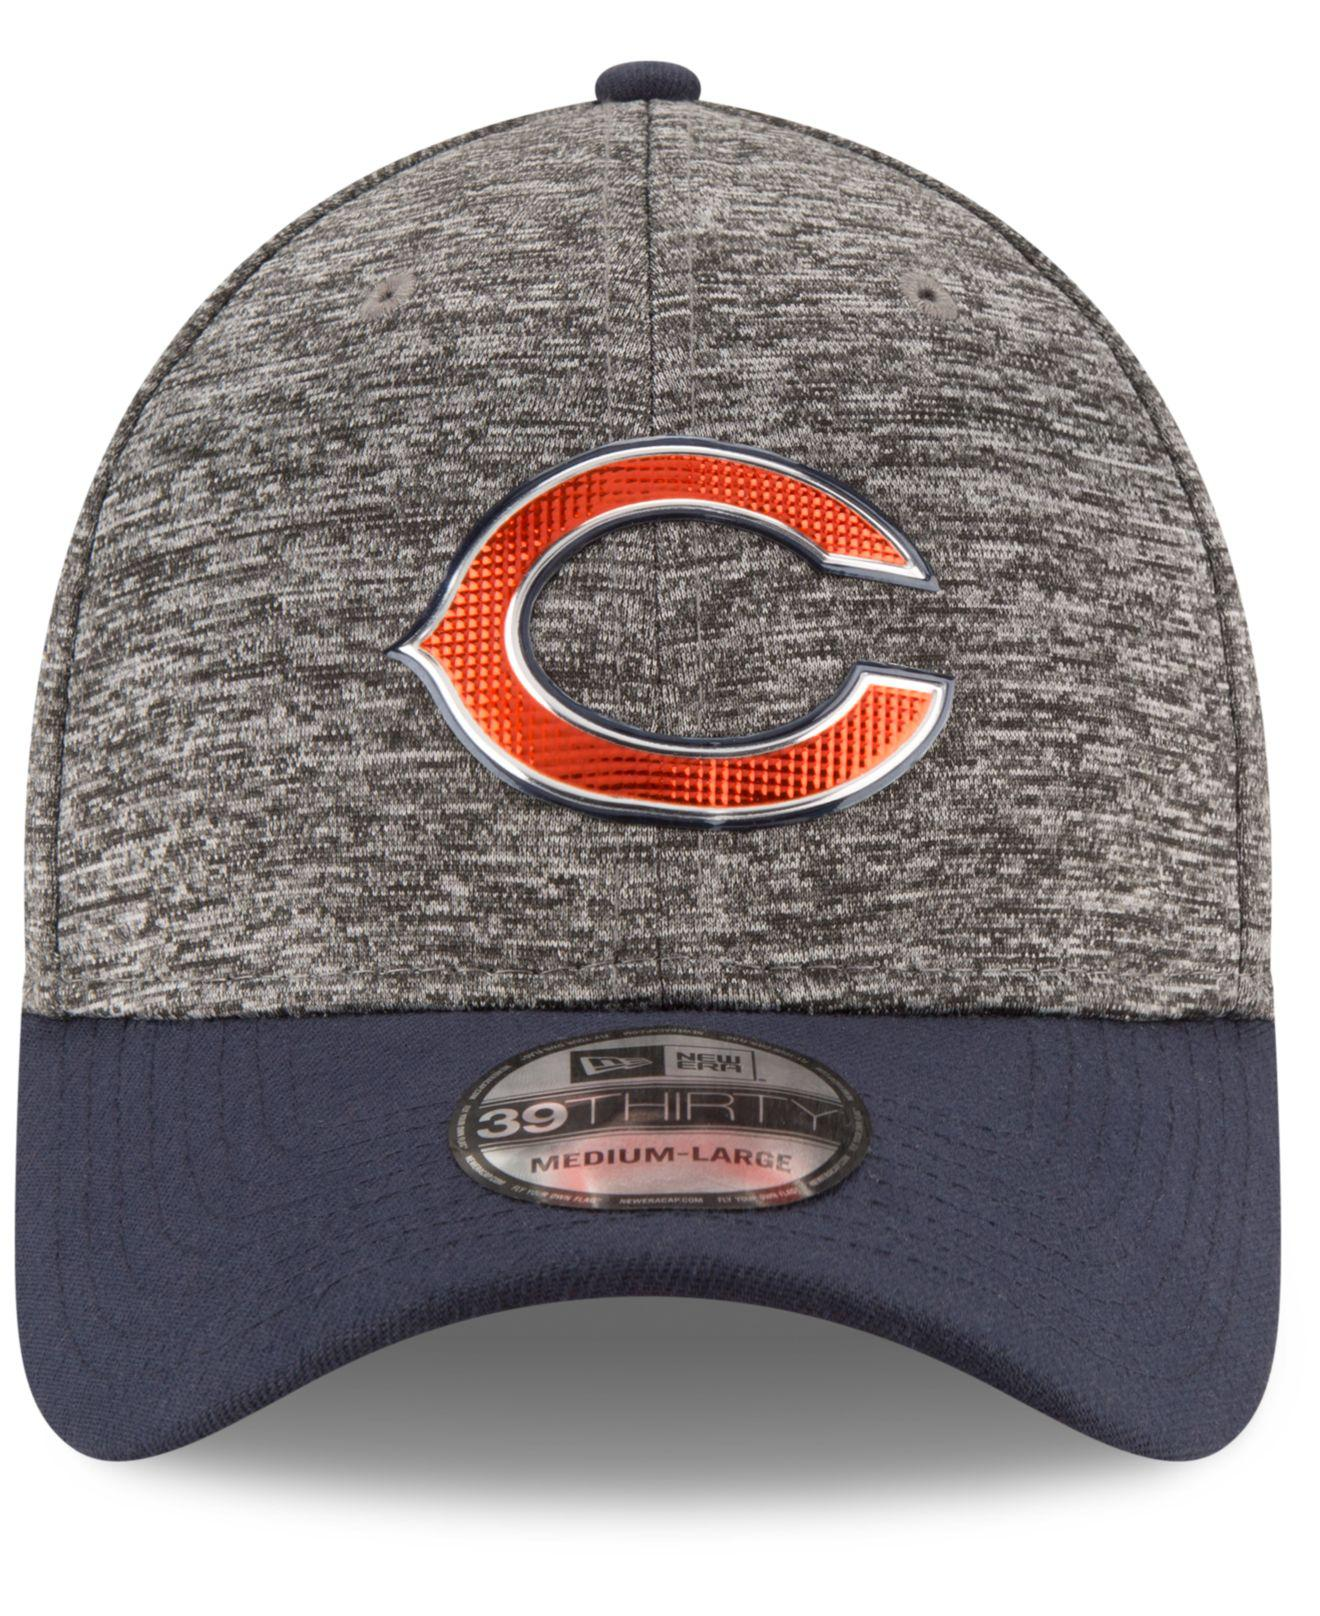 4a72cd1cd4ffc1 ... where can i buy lyst ktz chicago bears 2016 nfl draft 39thirty cap in  gray for